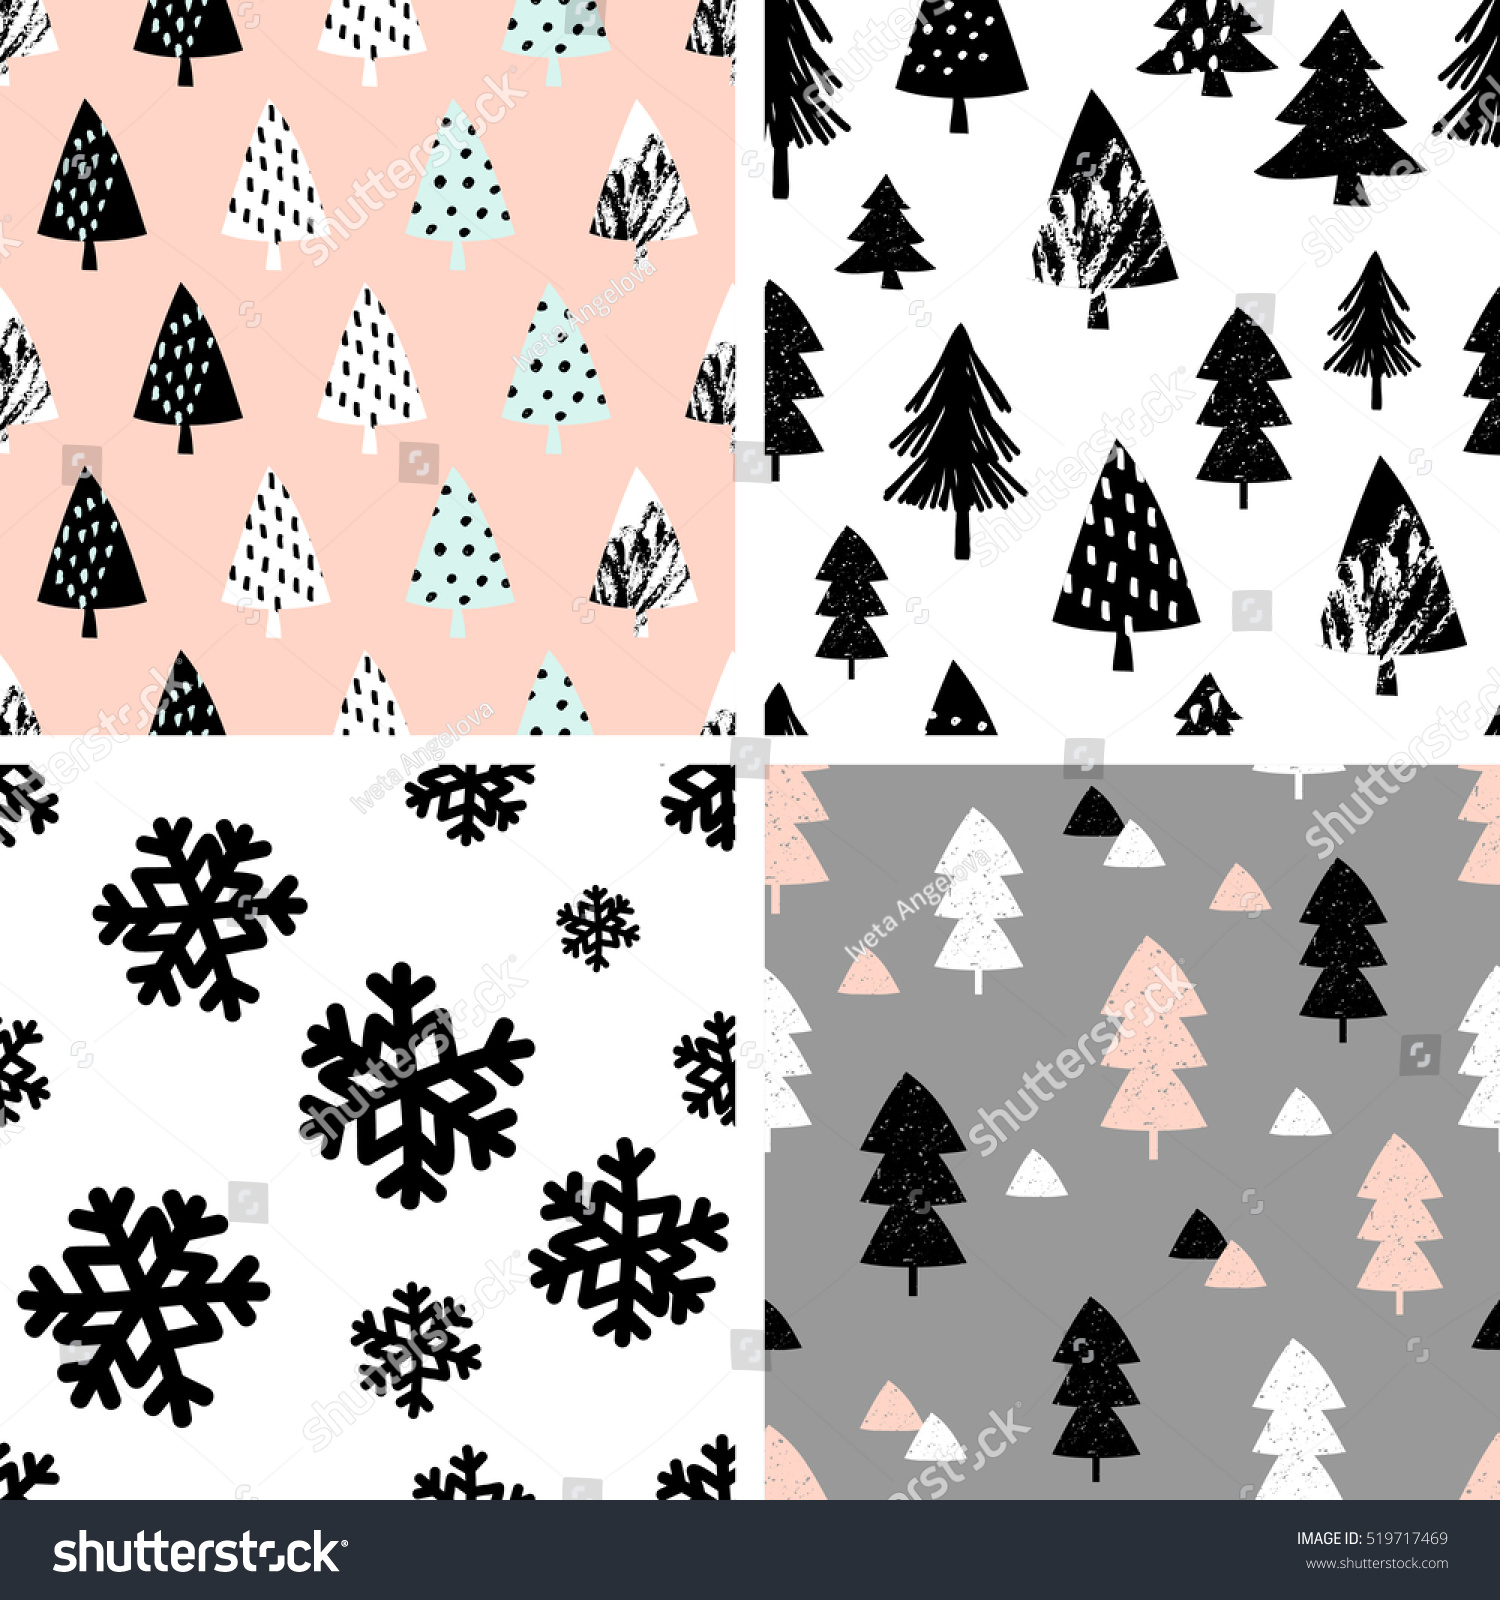 Seamless fir tree scandinavian pattern textile background wrapping - A Set Of Four Winter Seamless Repeat Patterns With Christmas Trees And Snowflakes Tiling Festive